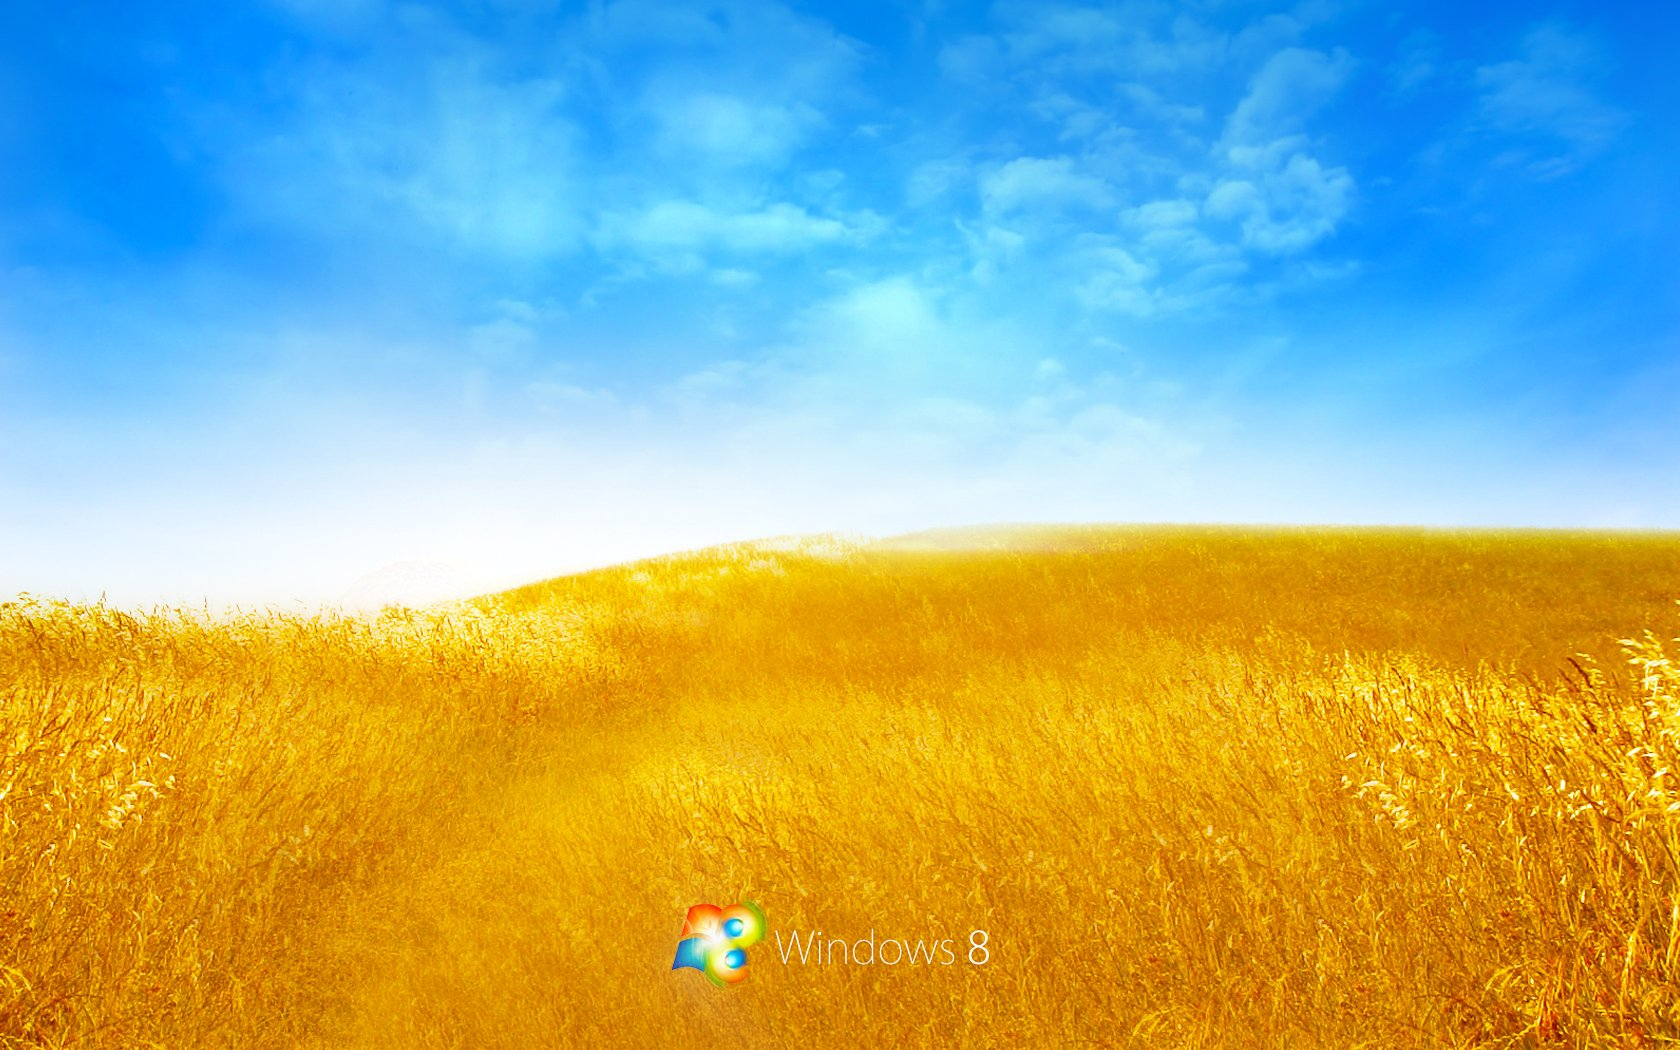 Windows 8 Bliss by rehsup 1680x1050